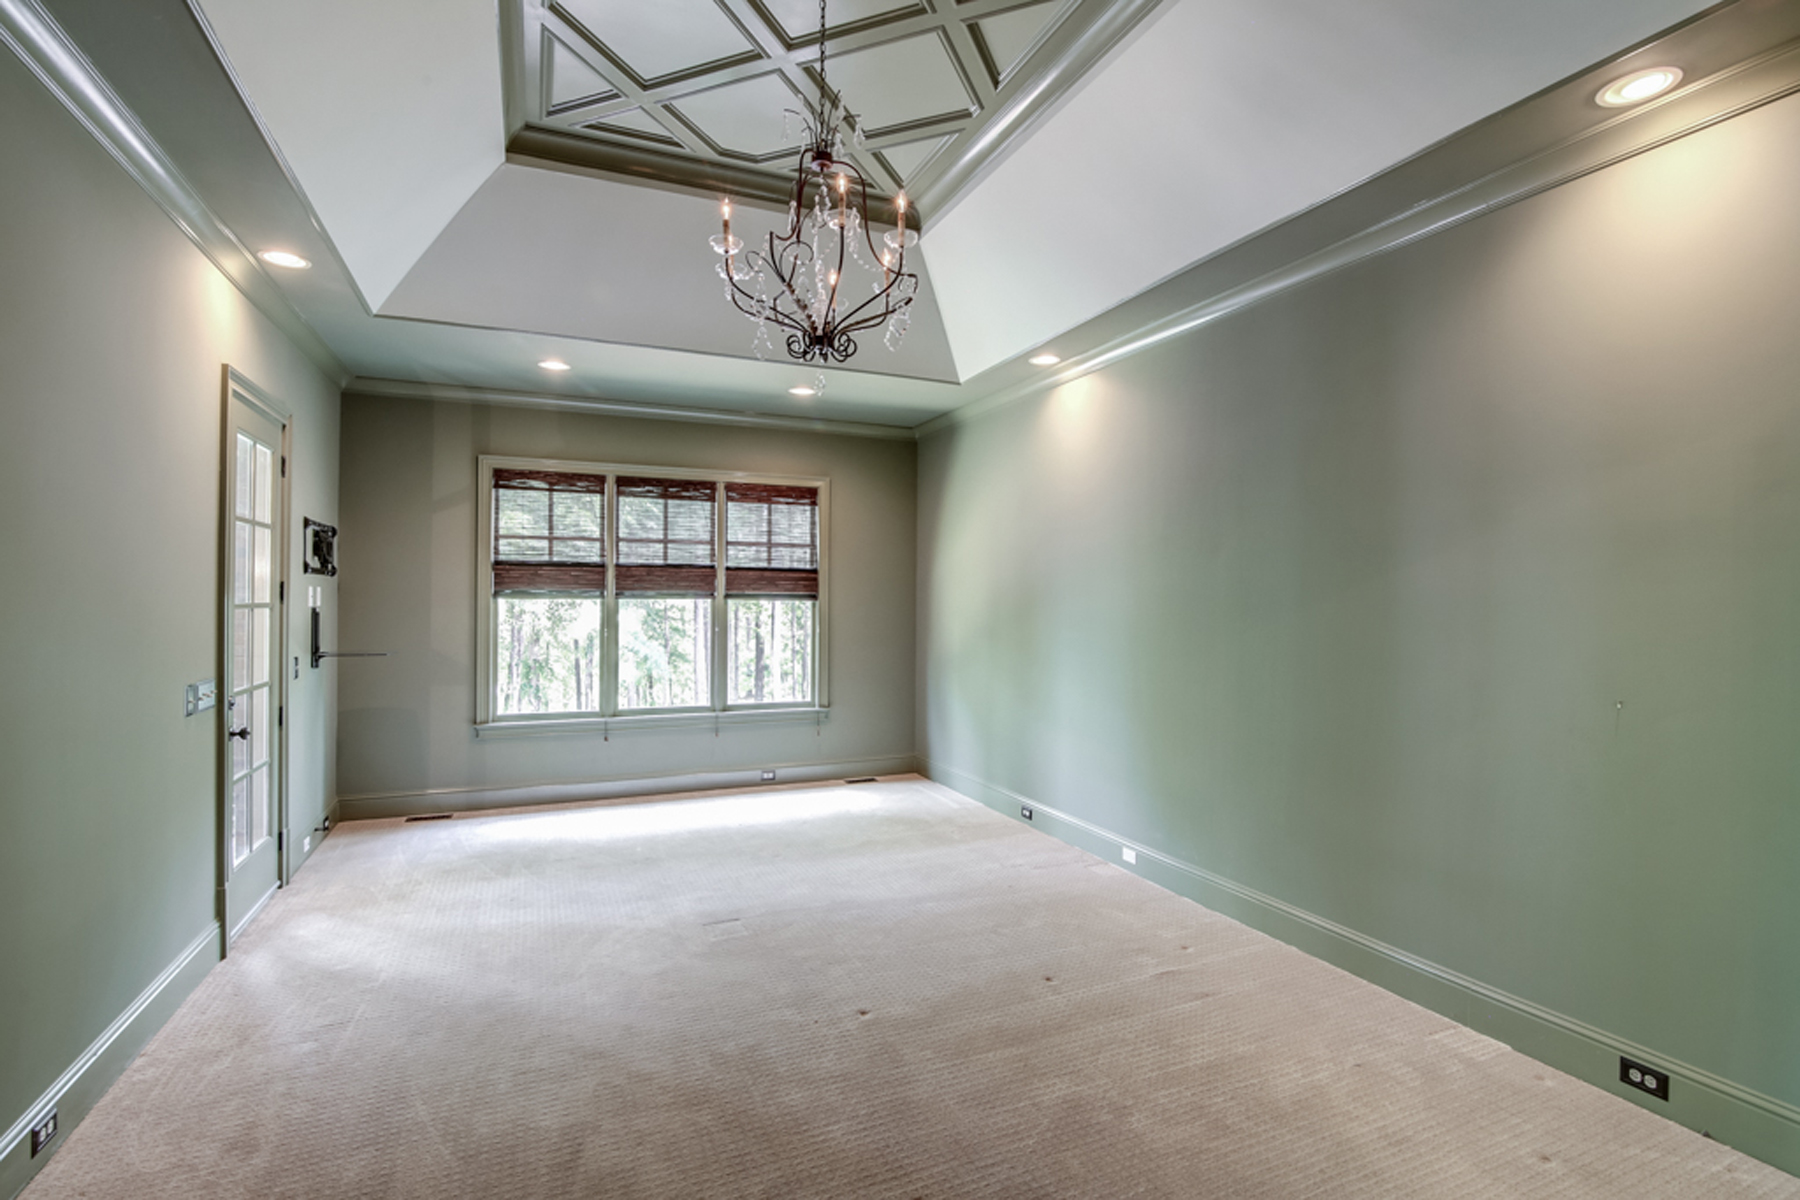 Additional photo for property listing at Immaculate With Master On Main 6062 Tattnall Overlook Acworth, Geórgia 30101 Estados Unidos